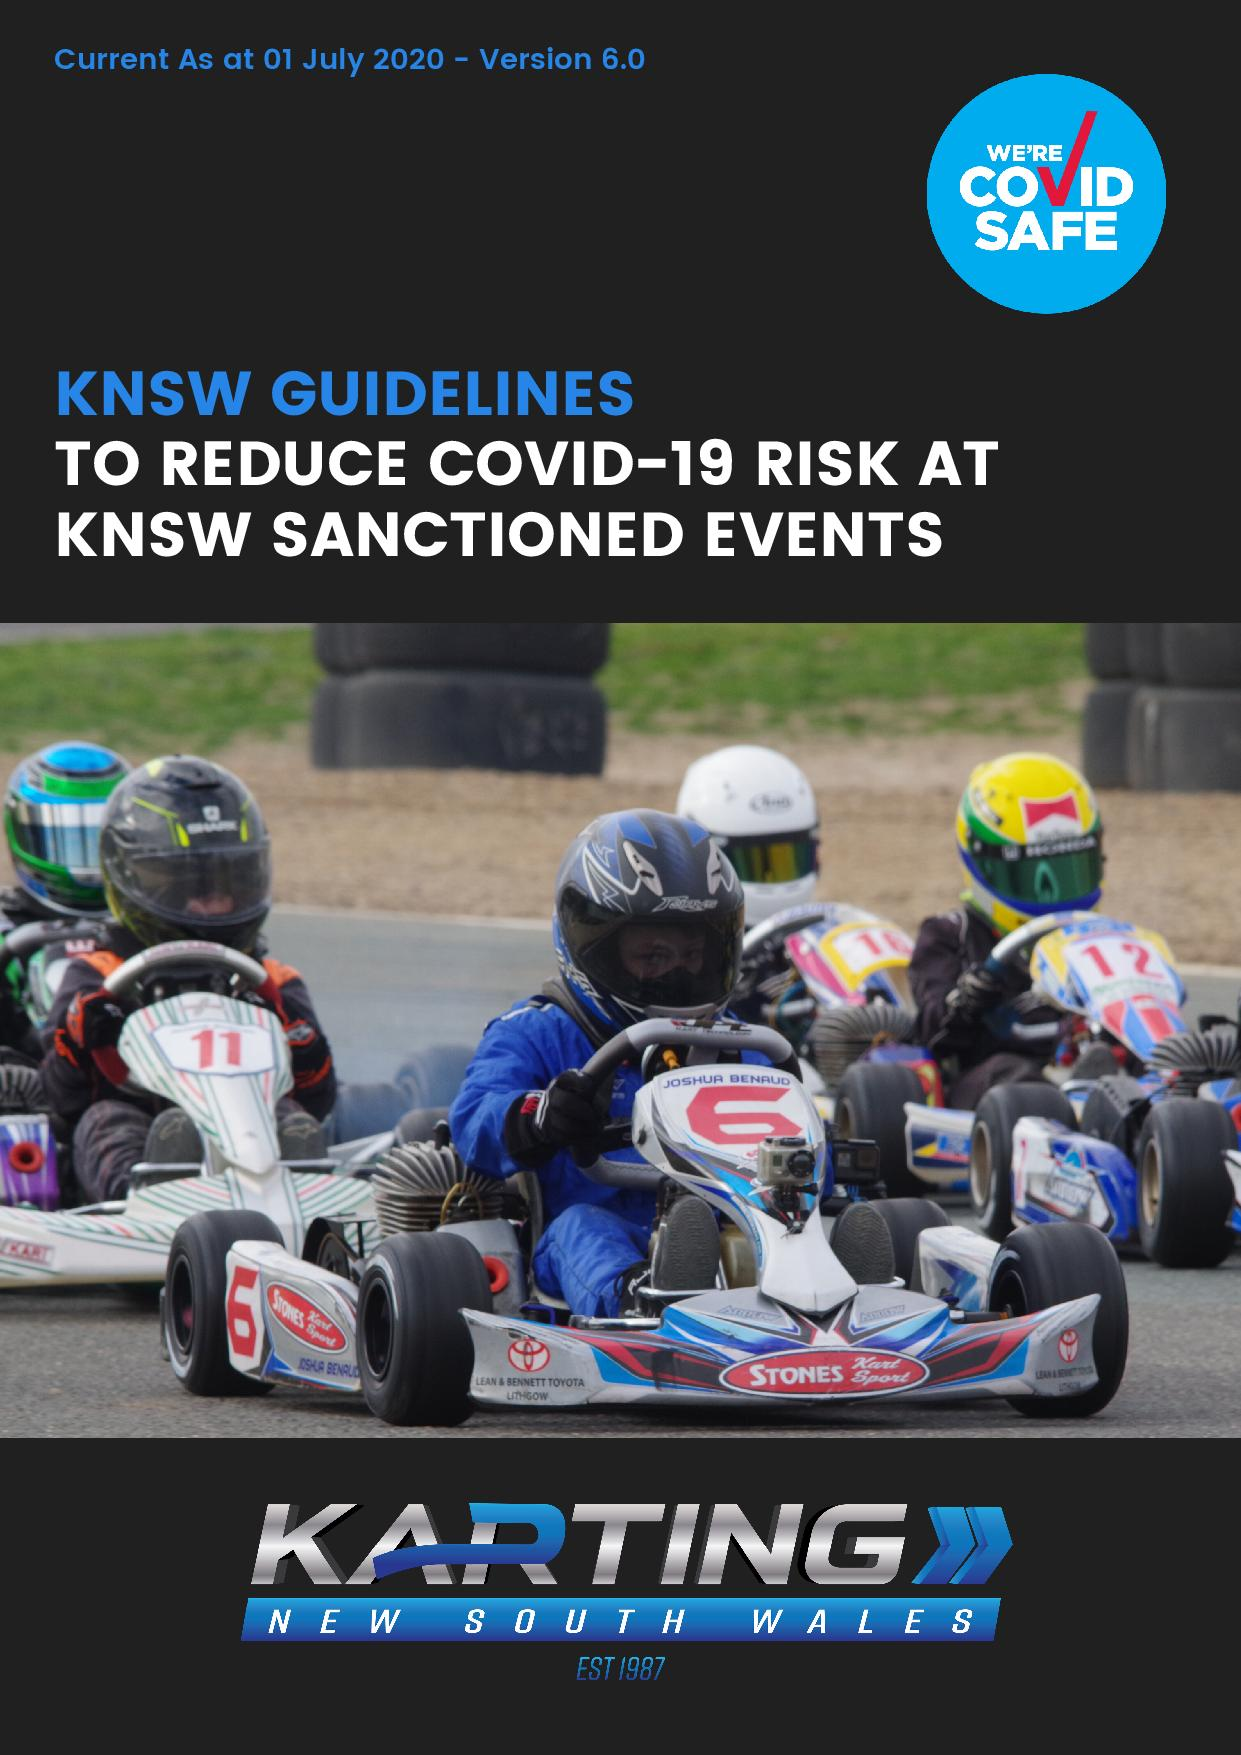 KNSW COVID-19 Guidelines Version 6.0